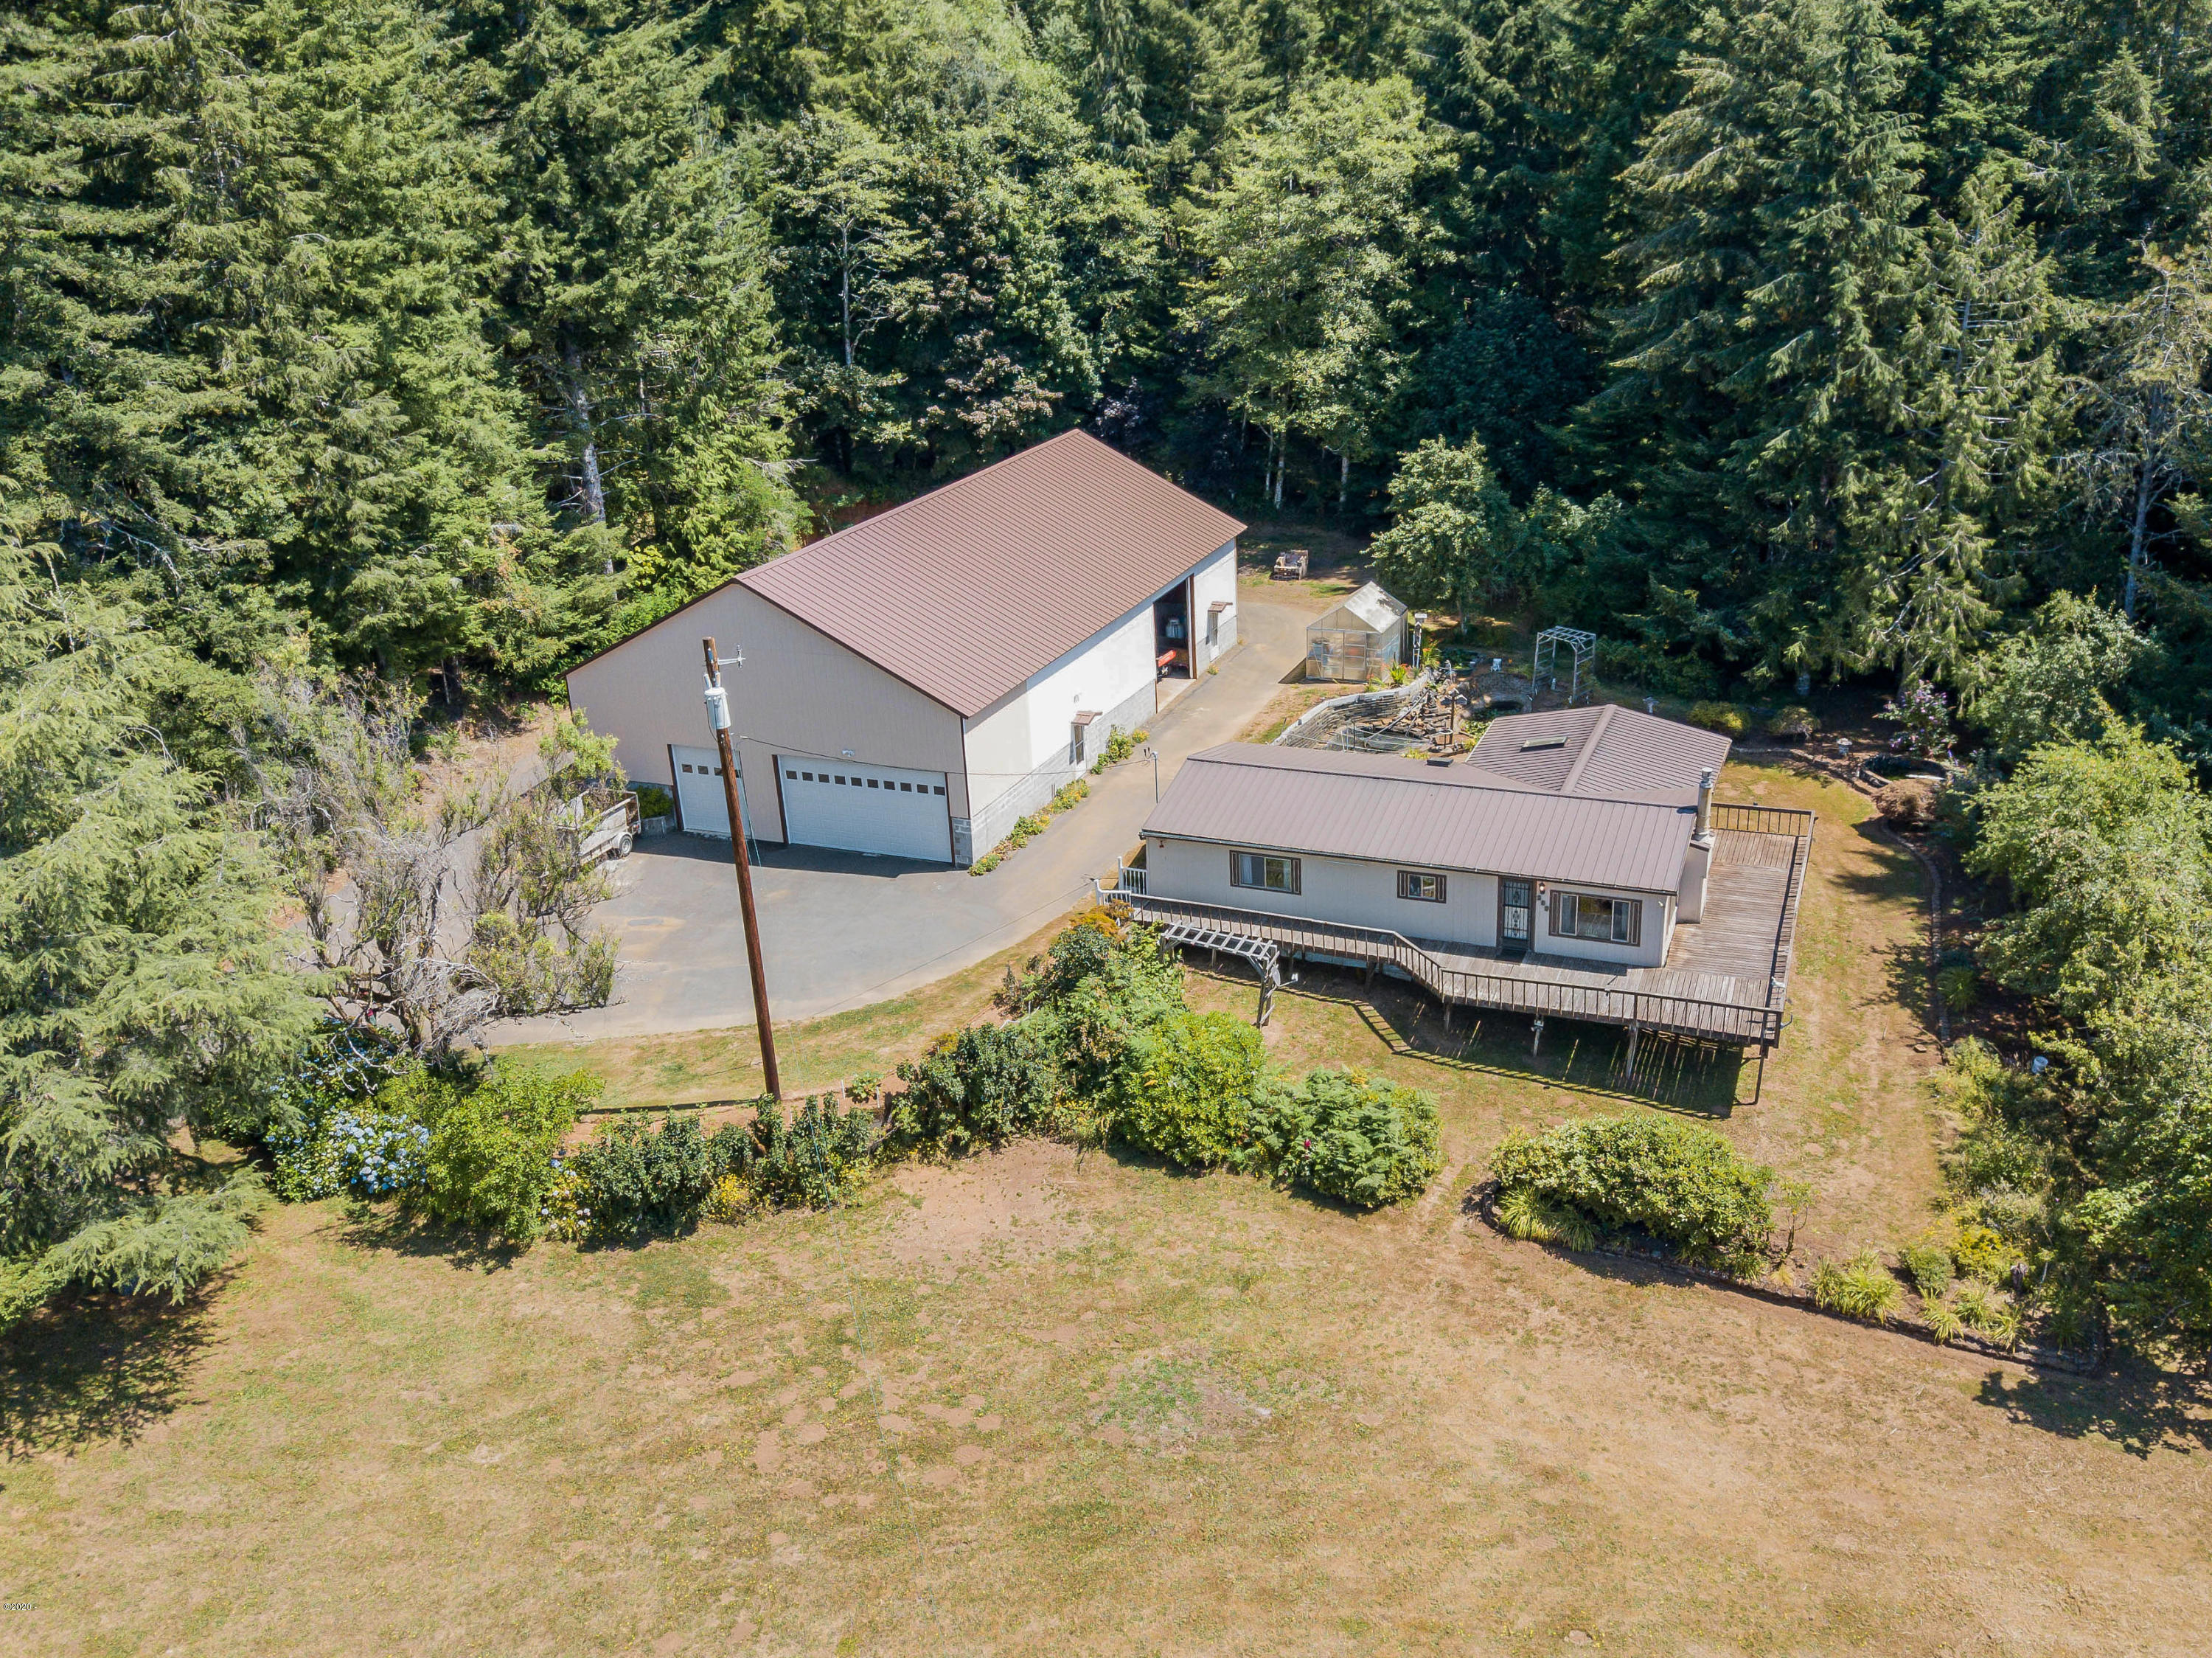 295 N Bear Creek Rd, Otis, OR 97368 - Aerial-Property